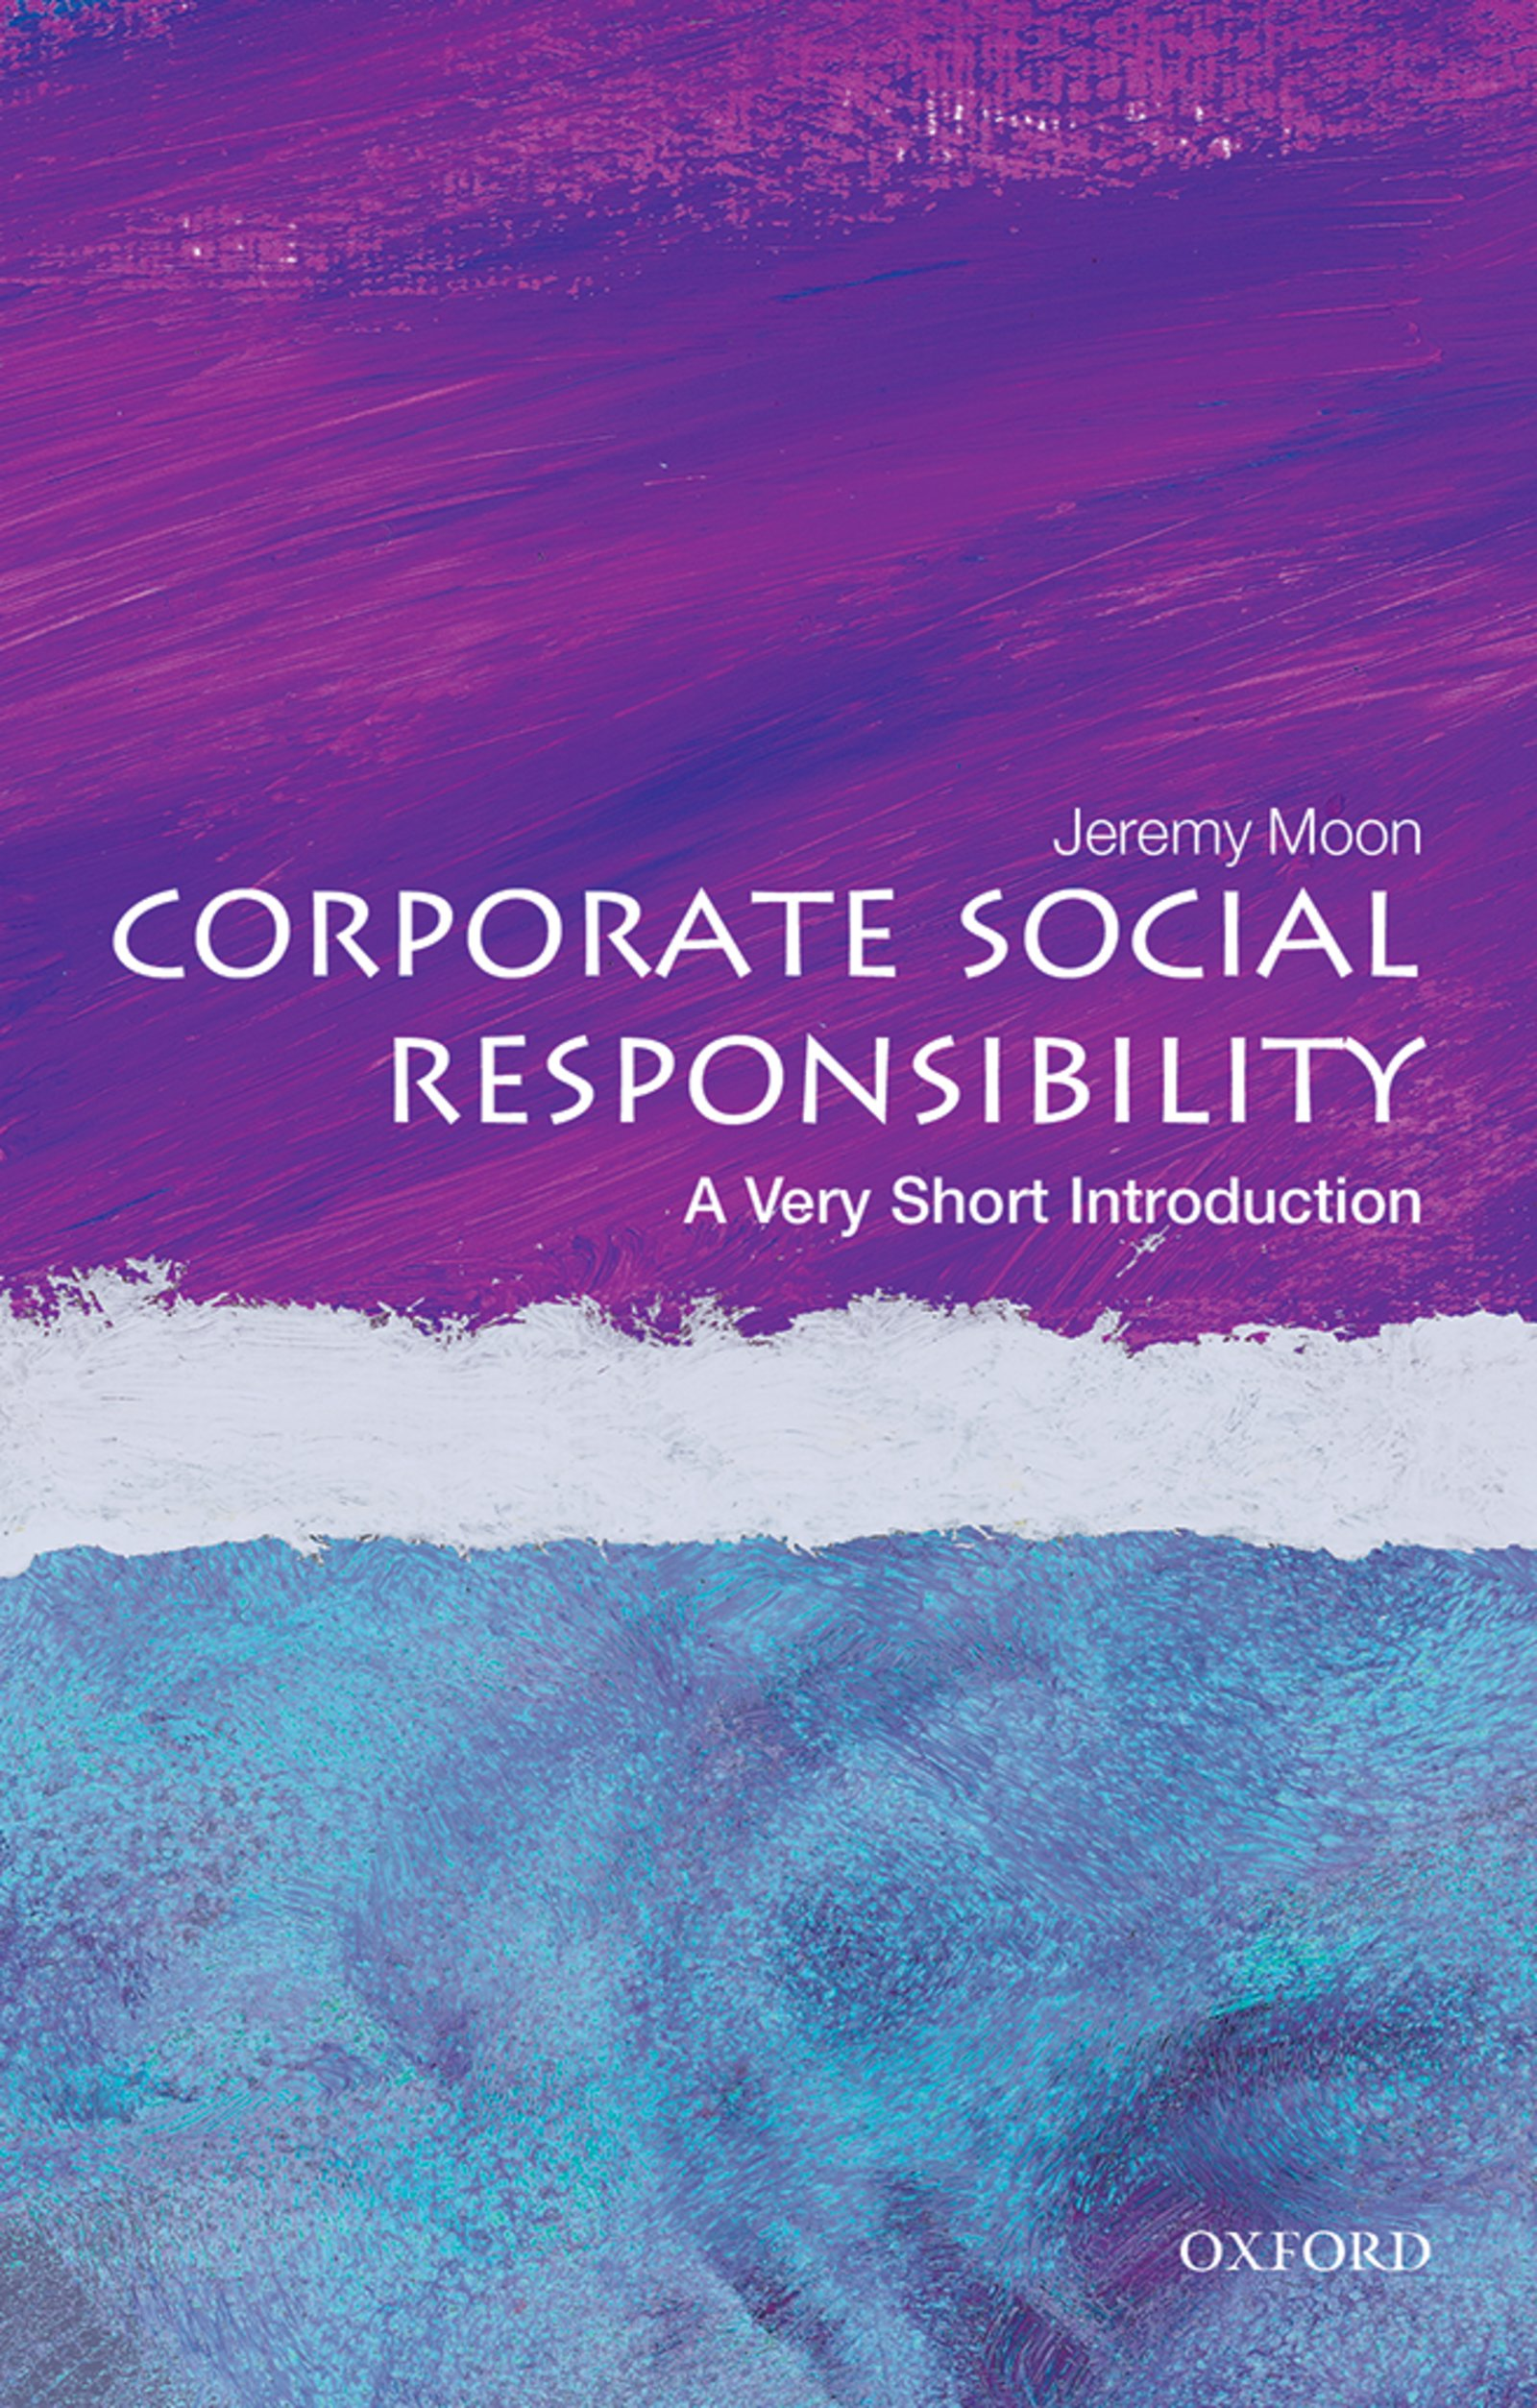 Download Ebook Corporate Social Responsibility: A Very Short Introduction by Jeremy Moon Pdf